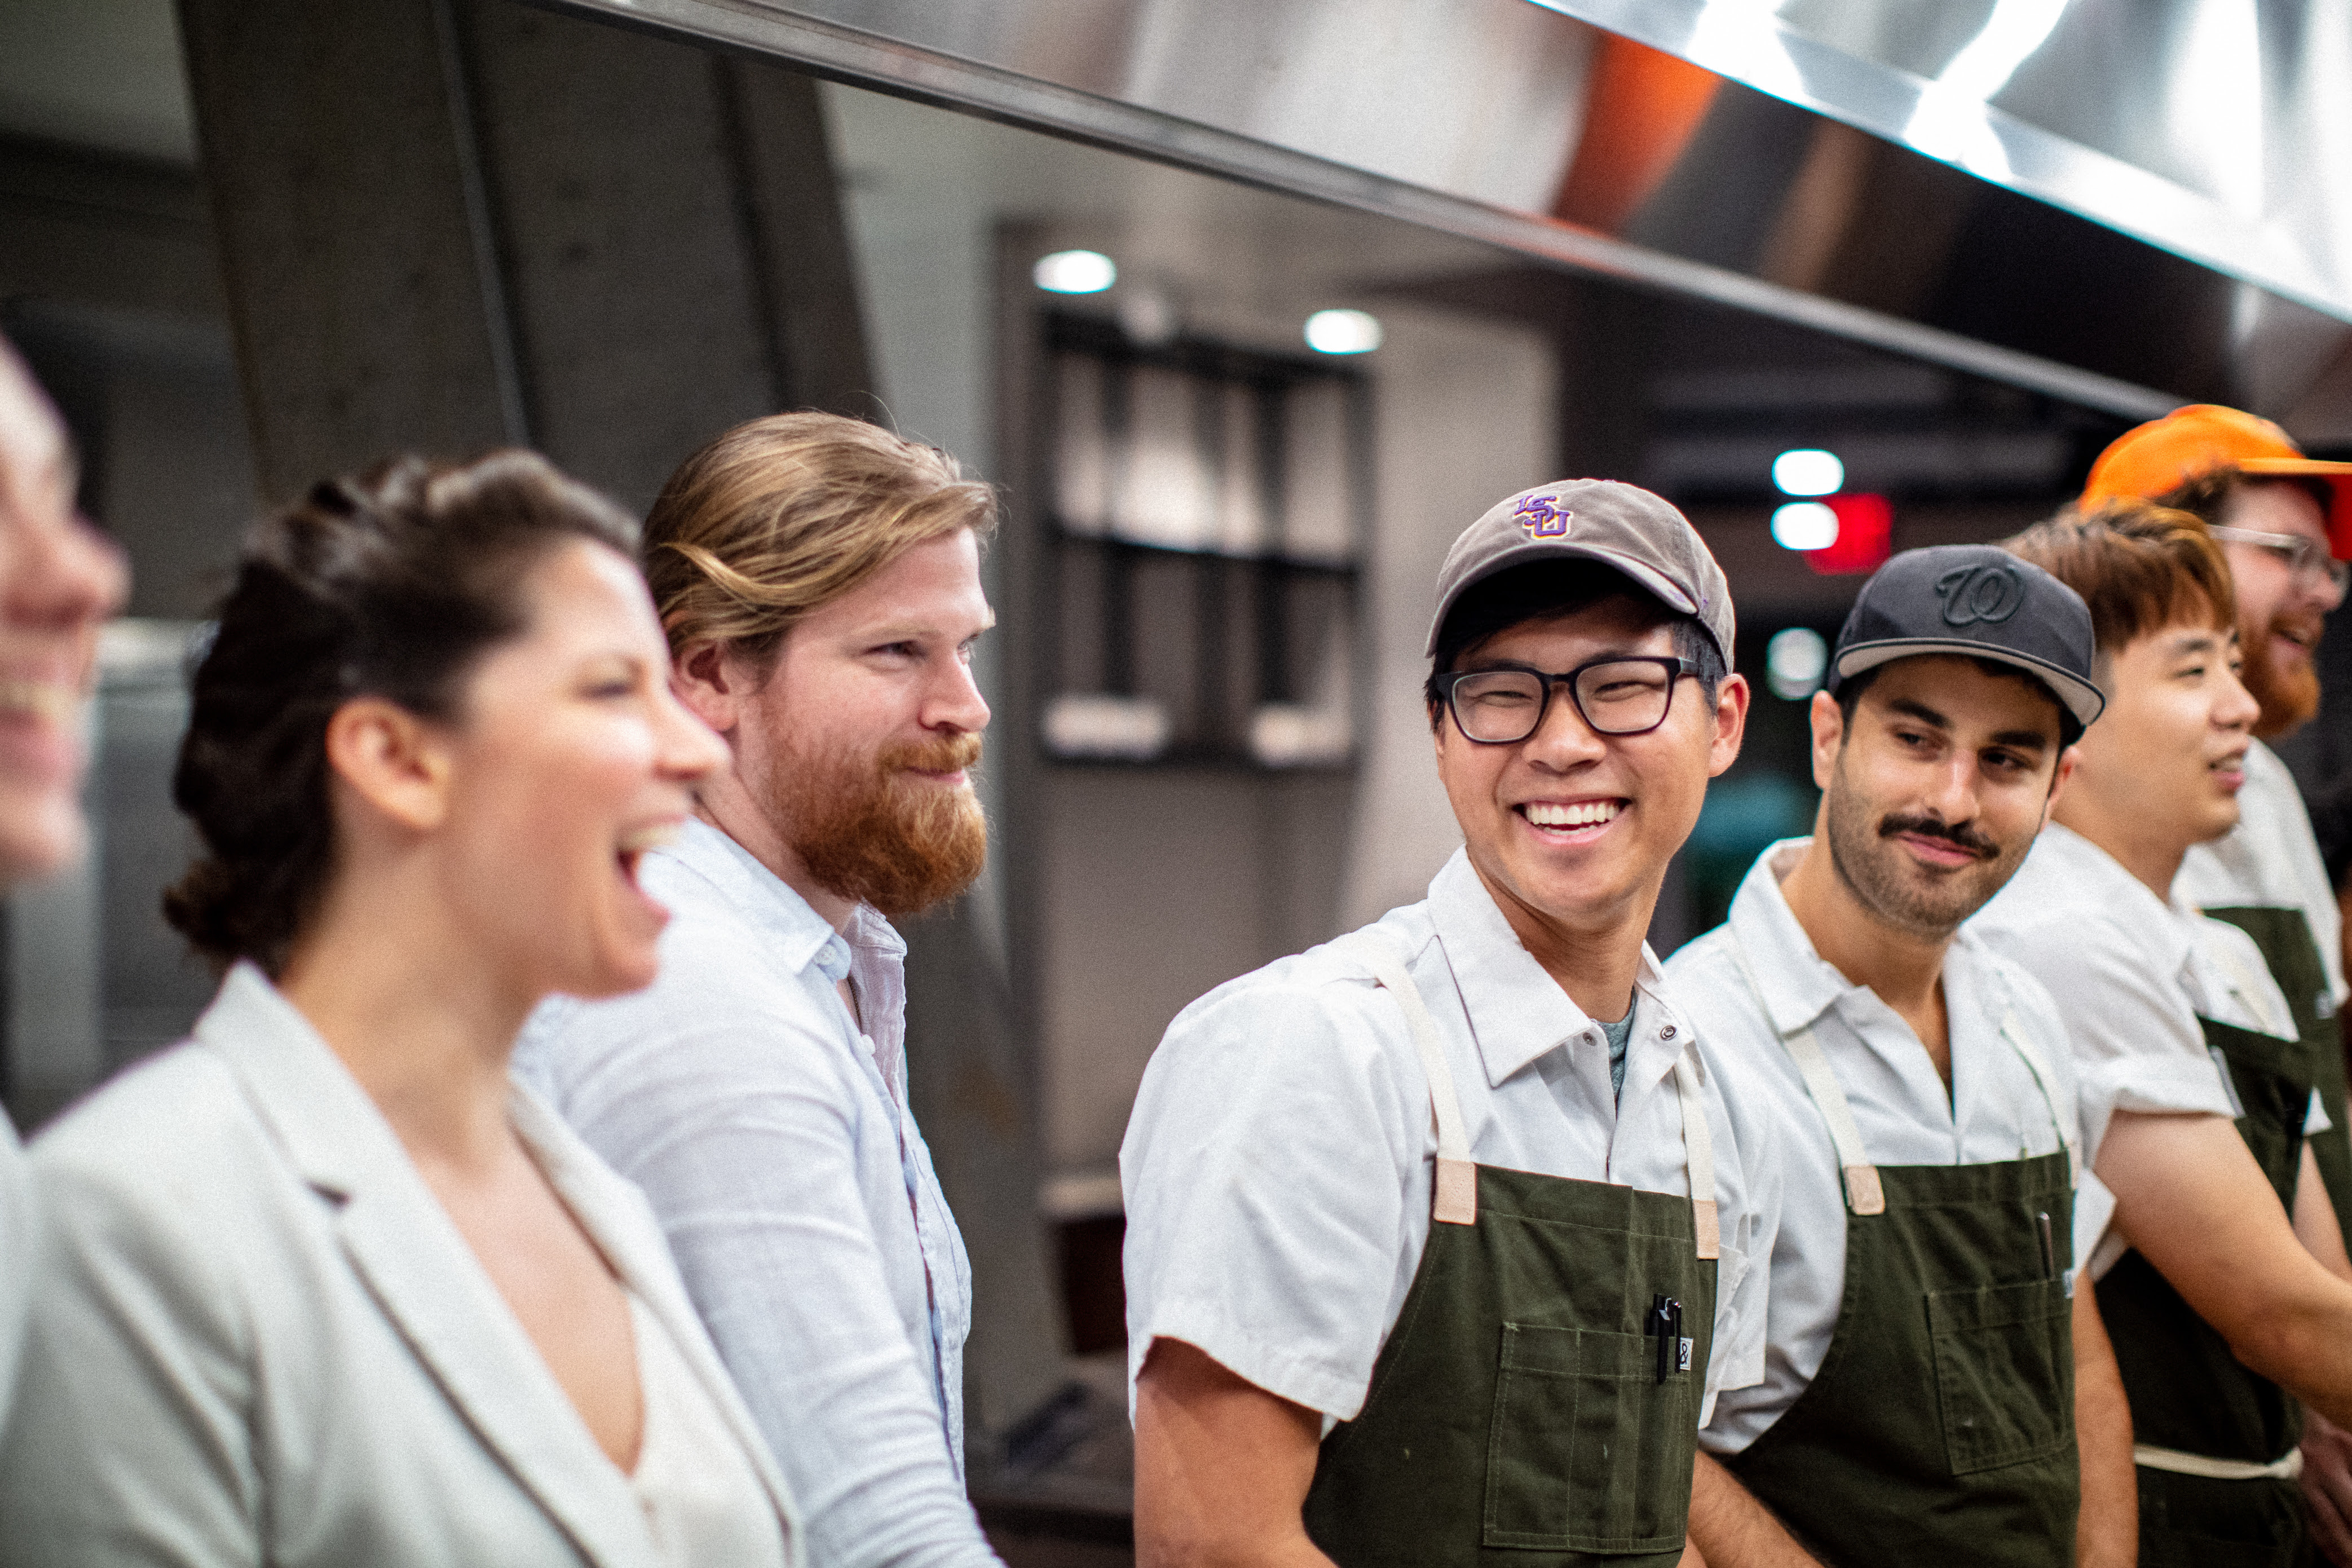 Kevin Tien, third from left, with his team at Emilie's